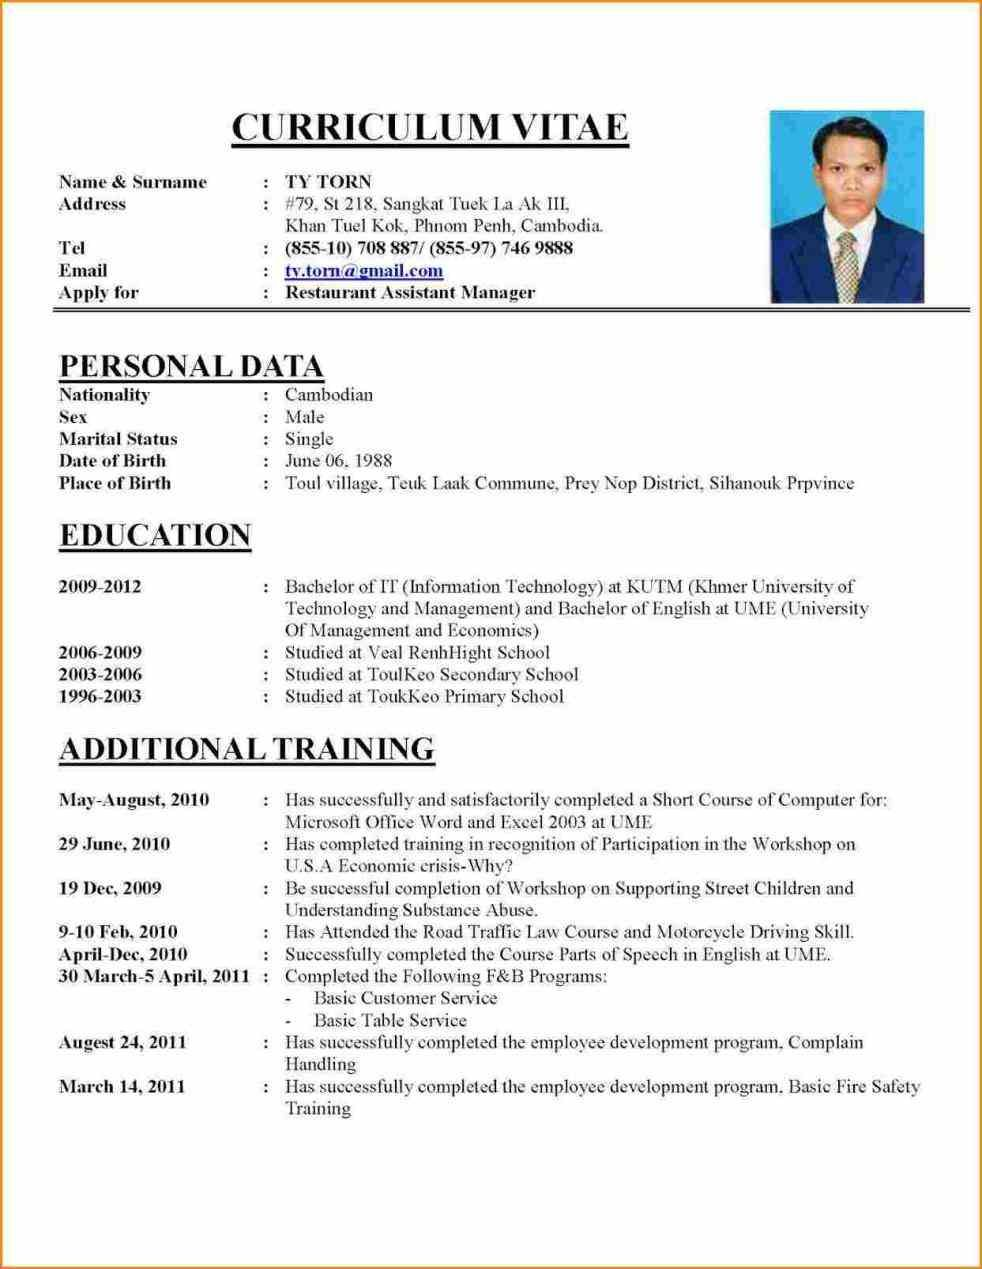 format for writing curriculum vitae  so  if you want to get this awesome curriculum vitae about